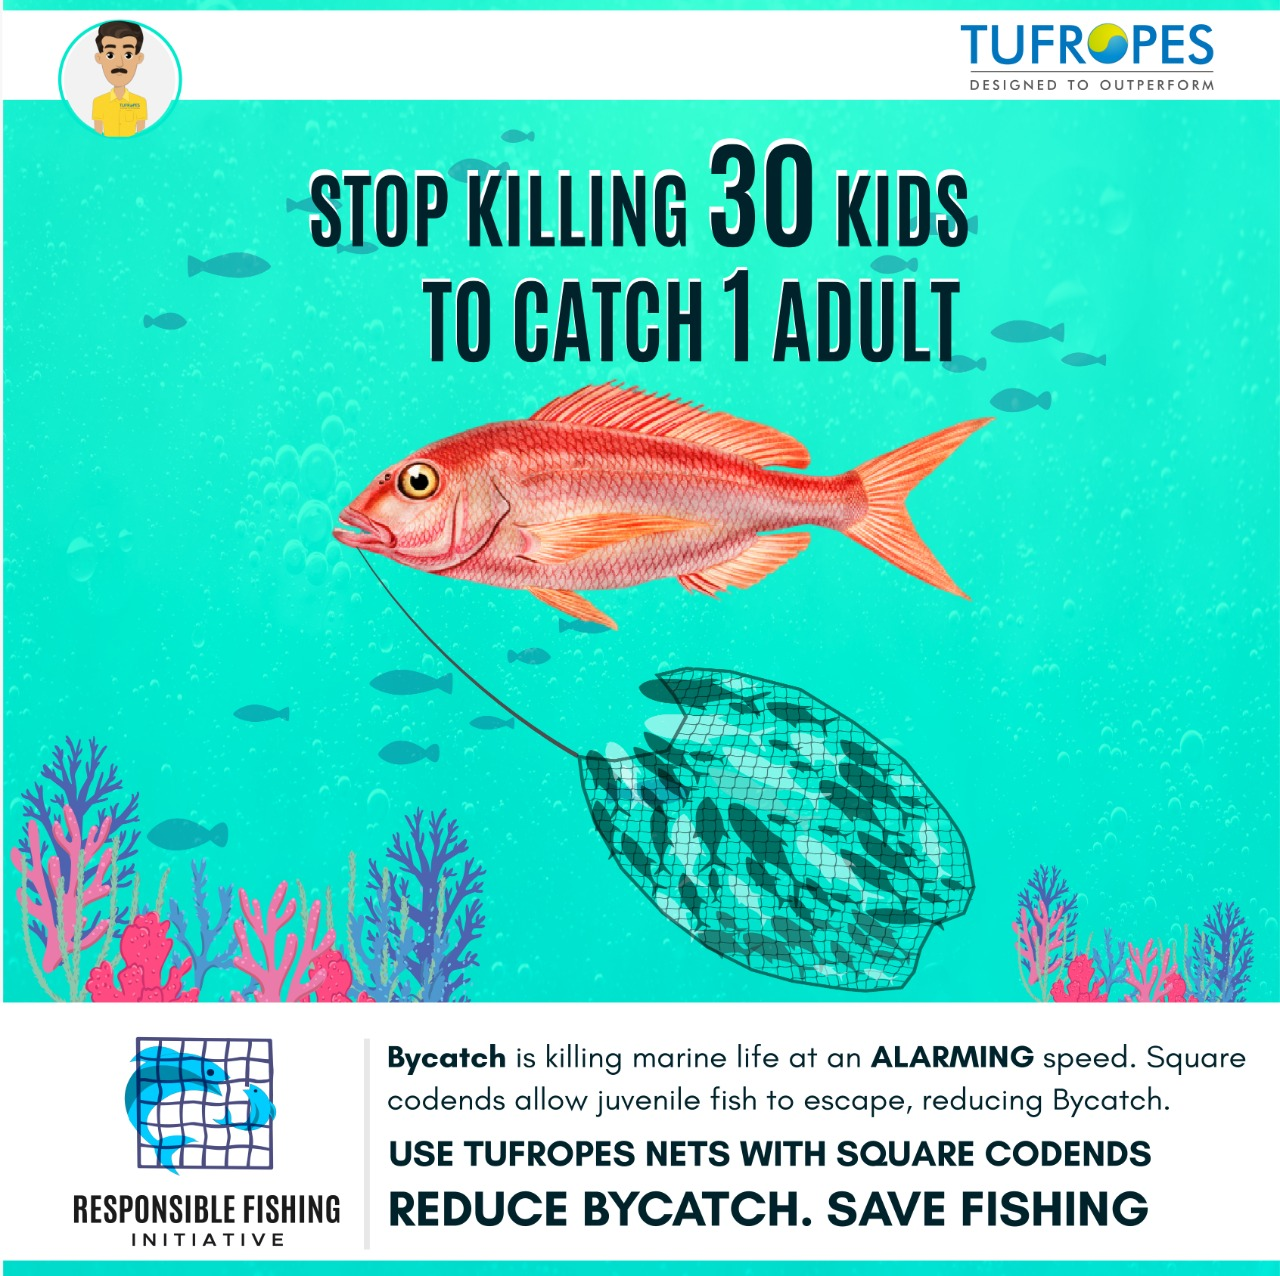 Responsible Fishing Initiative